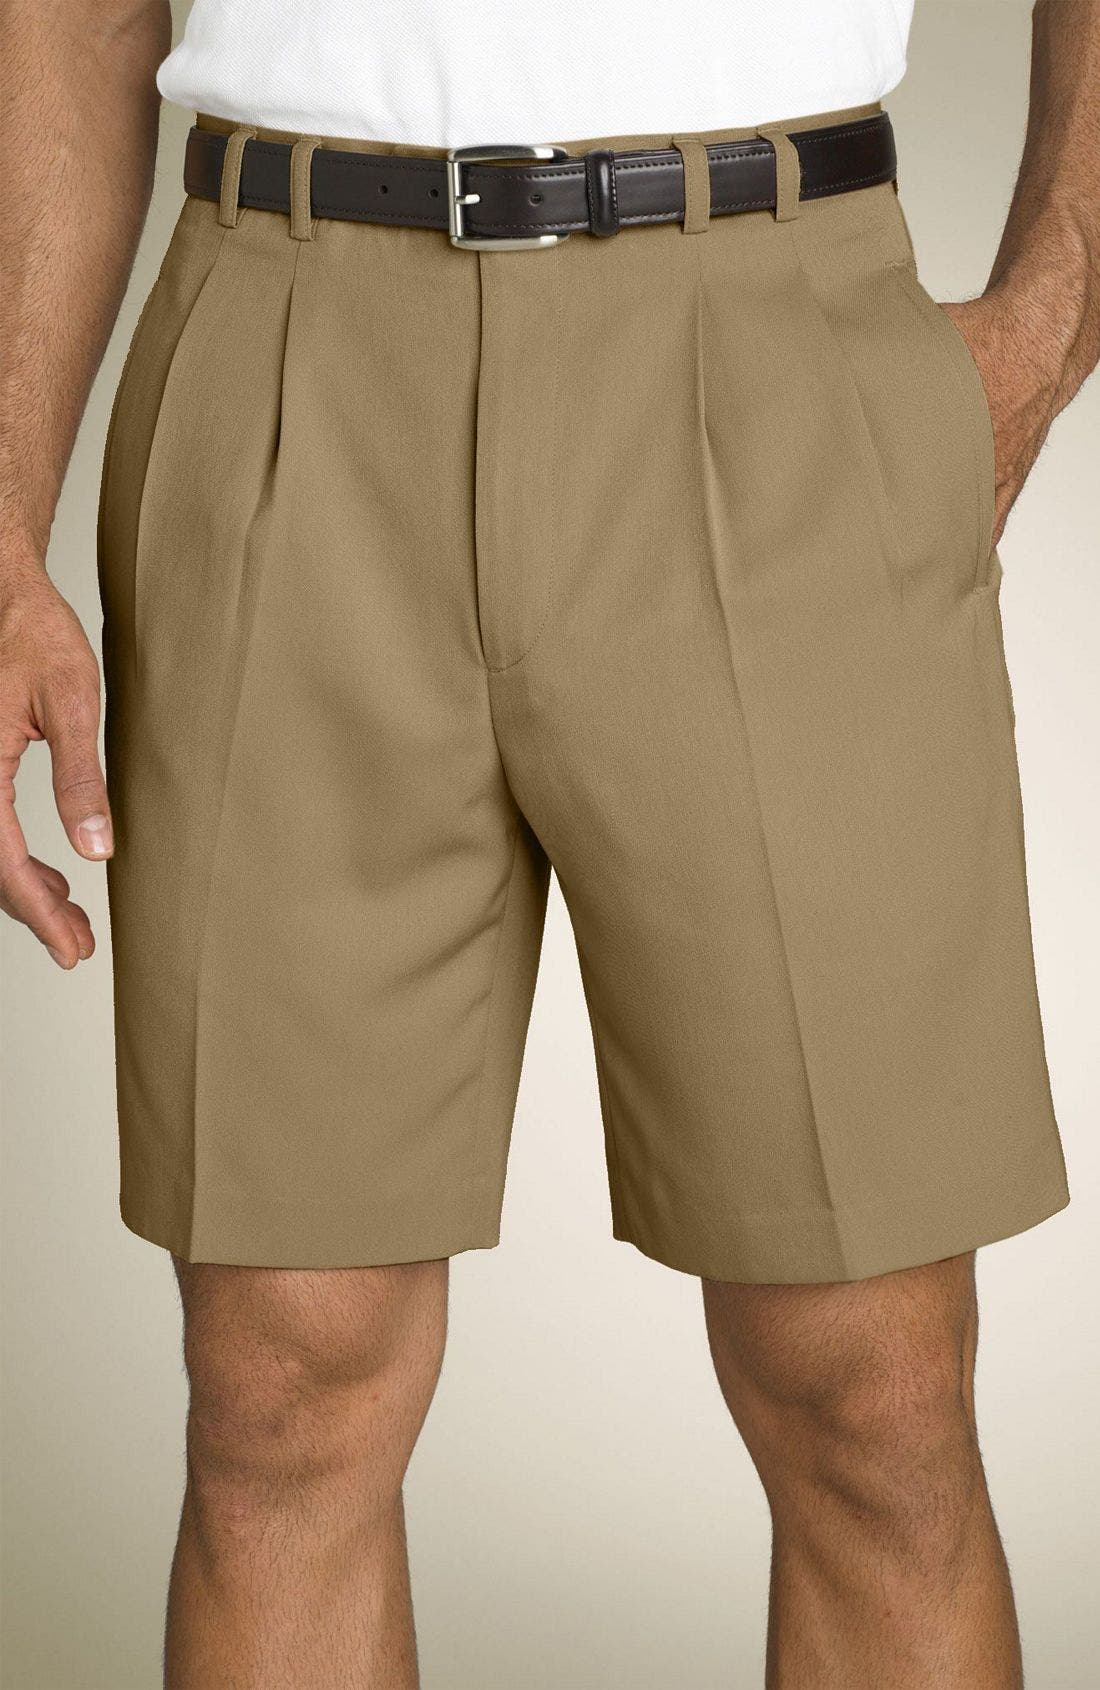 Main Image - Cutter & Buck Microfiber Golf Shorts (Big & Tall)